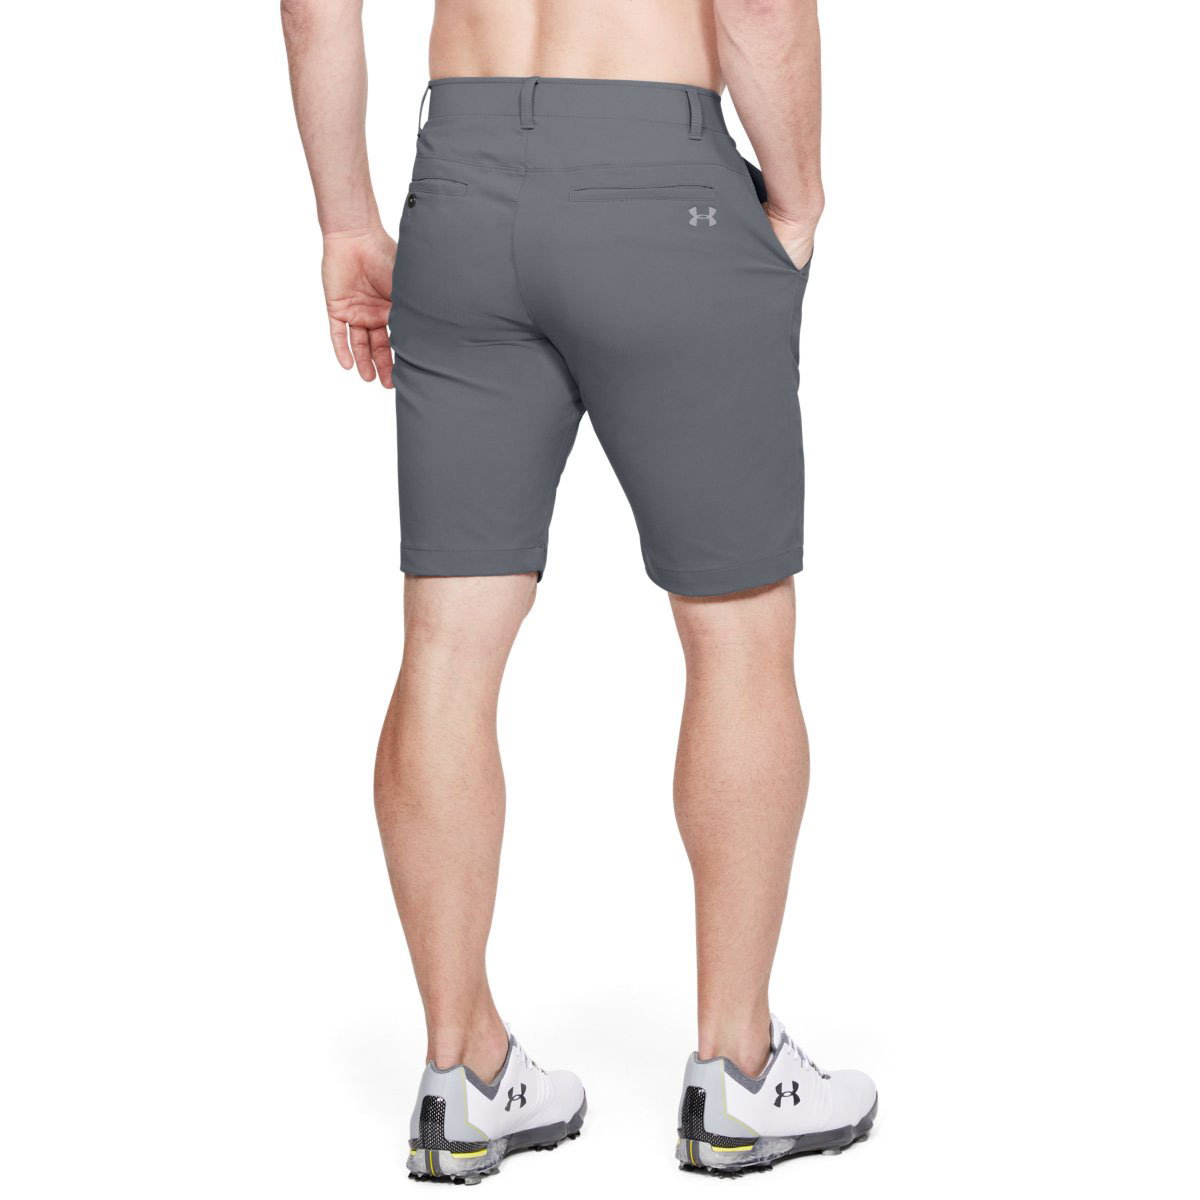 Under-Armour-Mens-Takeover-Taper-Mid-Length-Golf-Shorts-42-OFF-RRP thumbnail 22